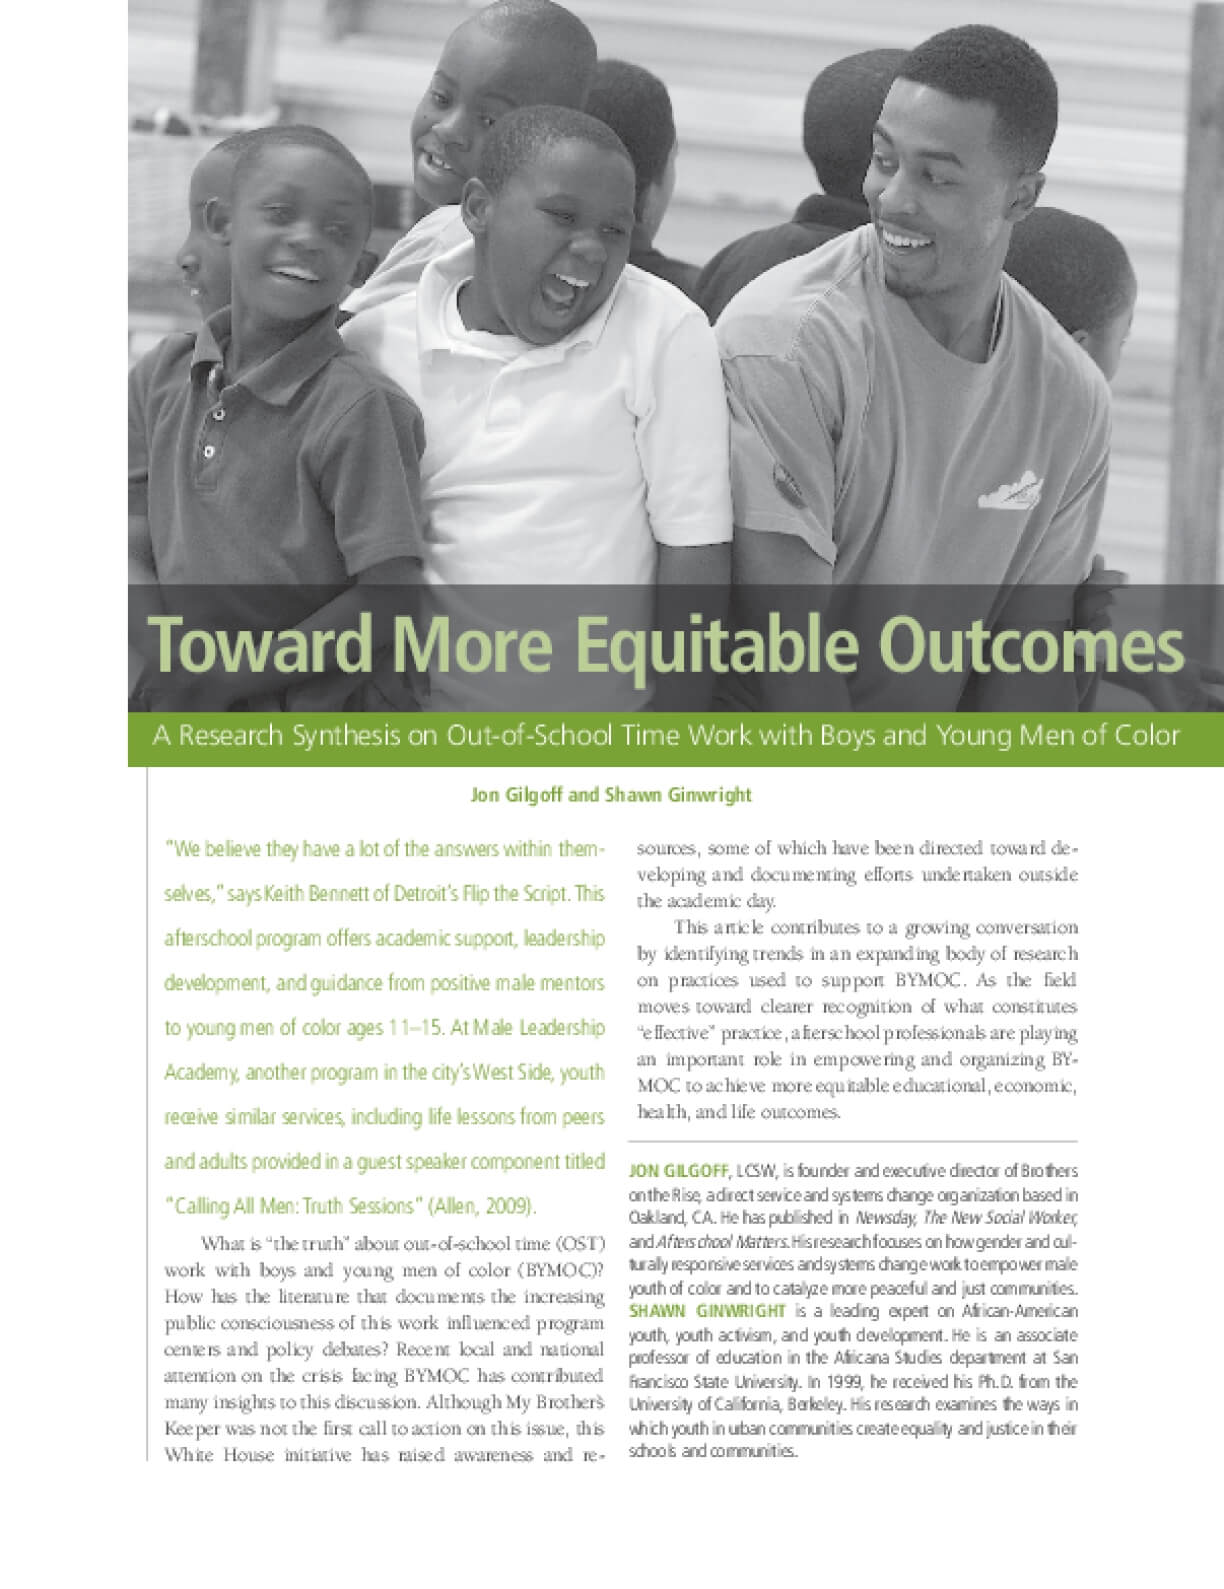 Toward More Equitable Outcomes: A Research Synthesis on Out-of-School Time Work with Boys and Young Men of Color